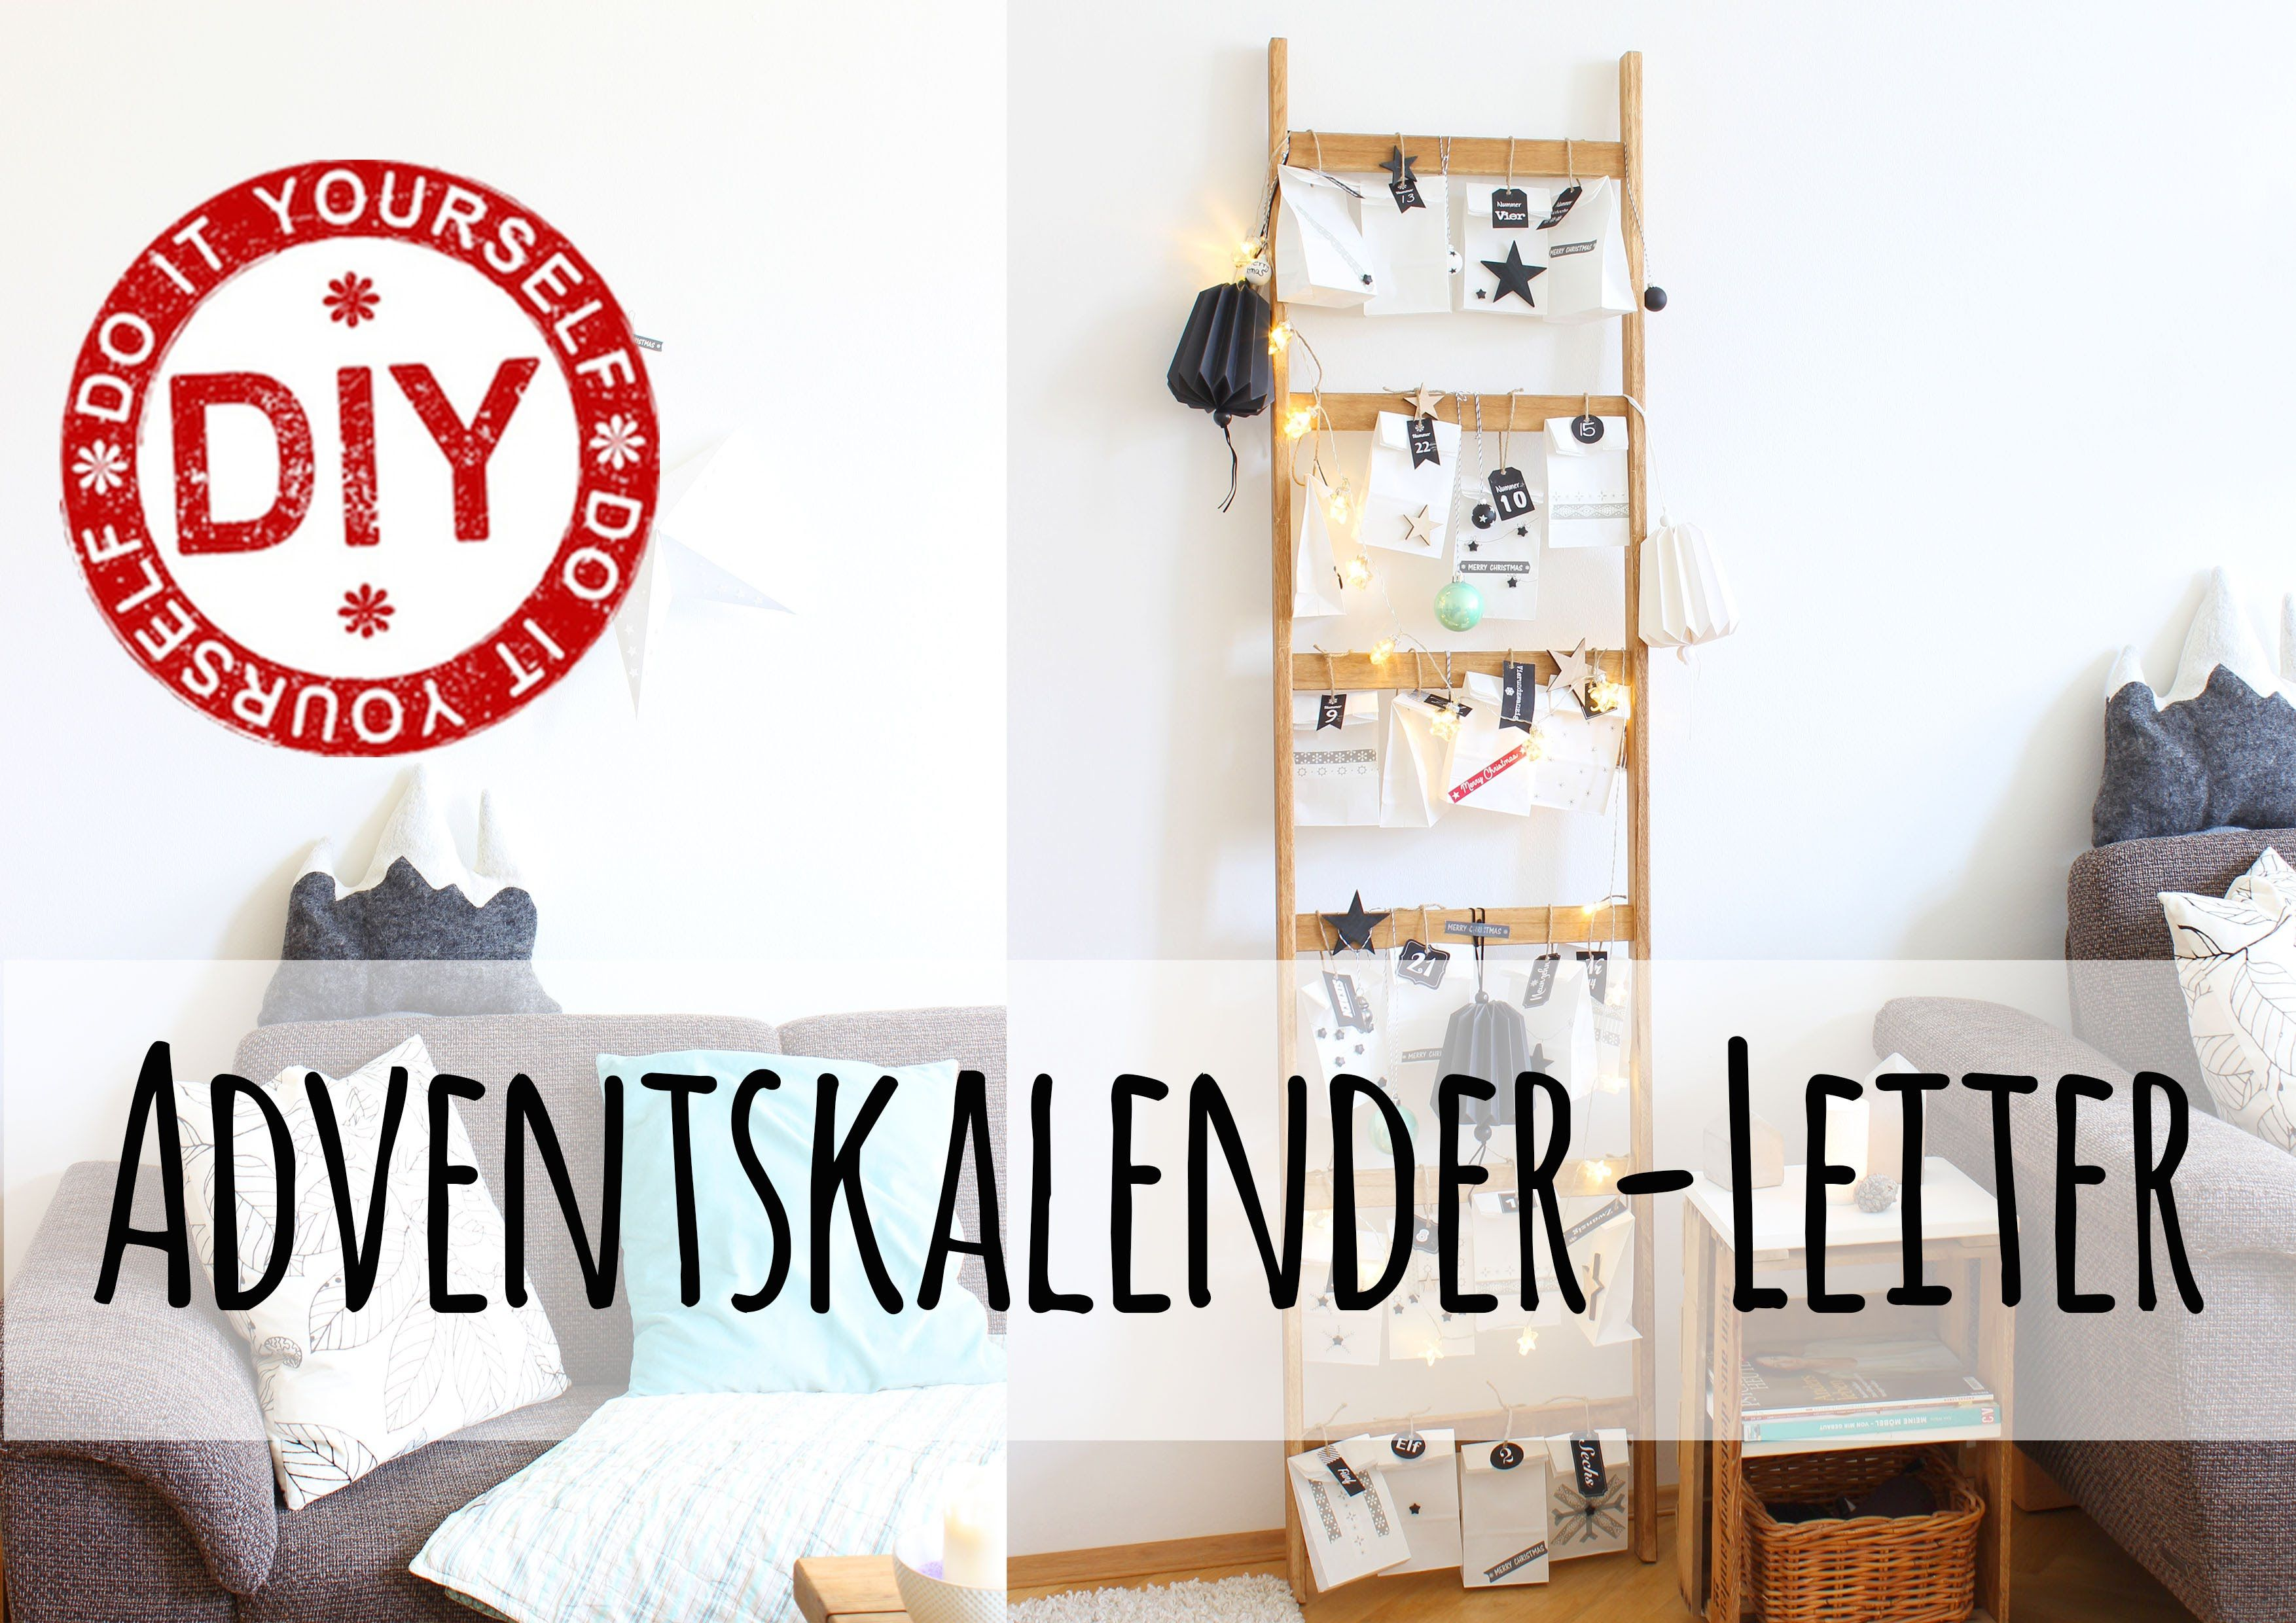 adventskalender i leiter bauen i deko inspirationen i mrs shabby chic i. Black Bedroom Furniture Sets. Home Design Ideas